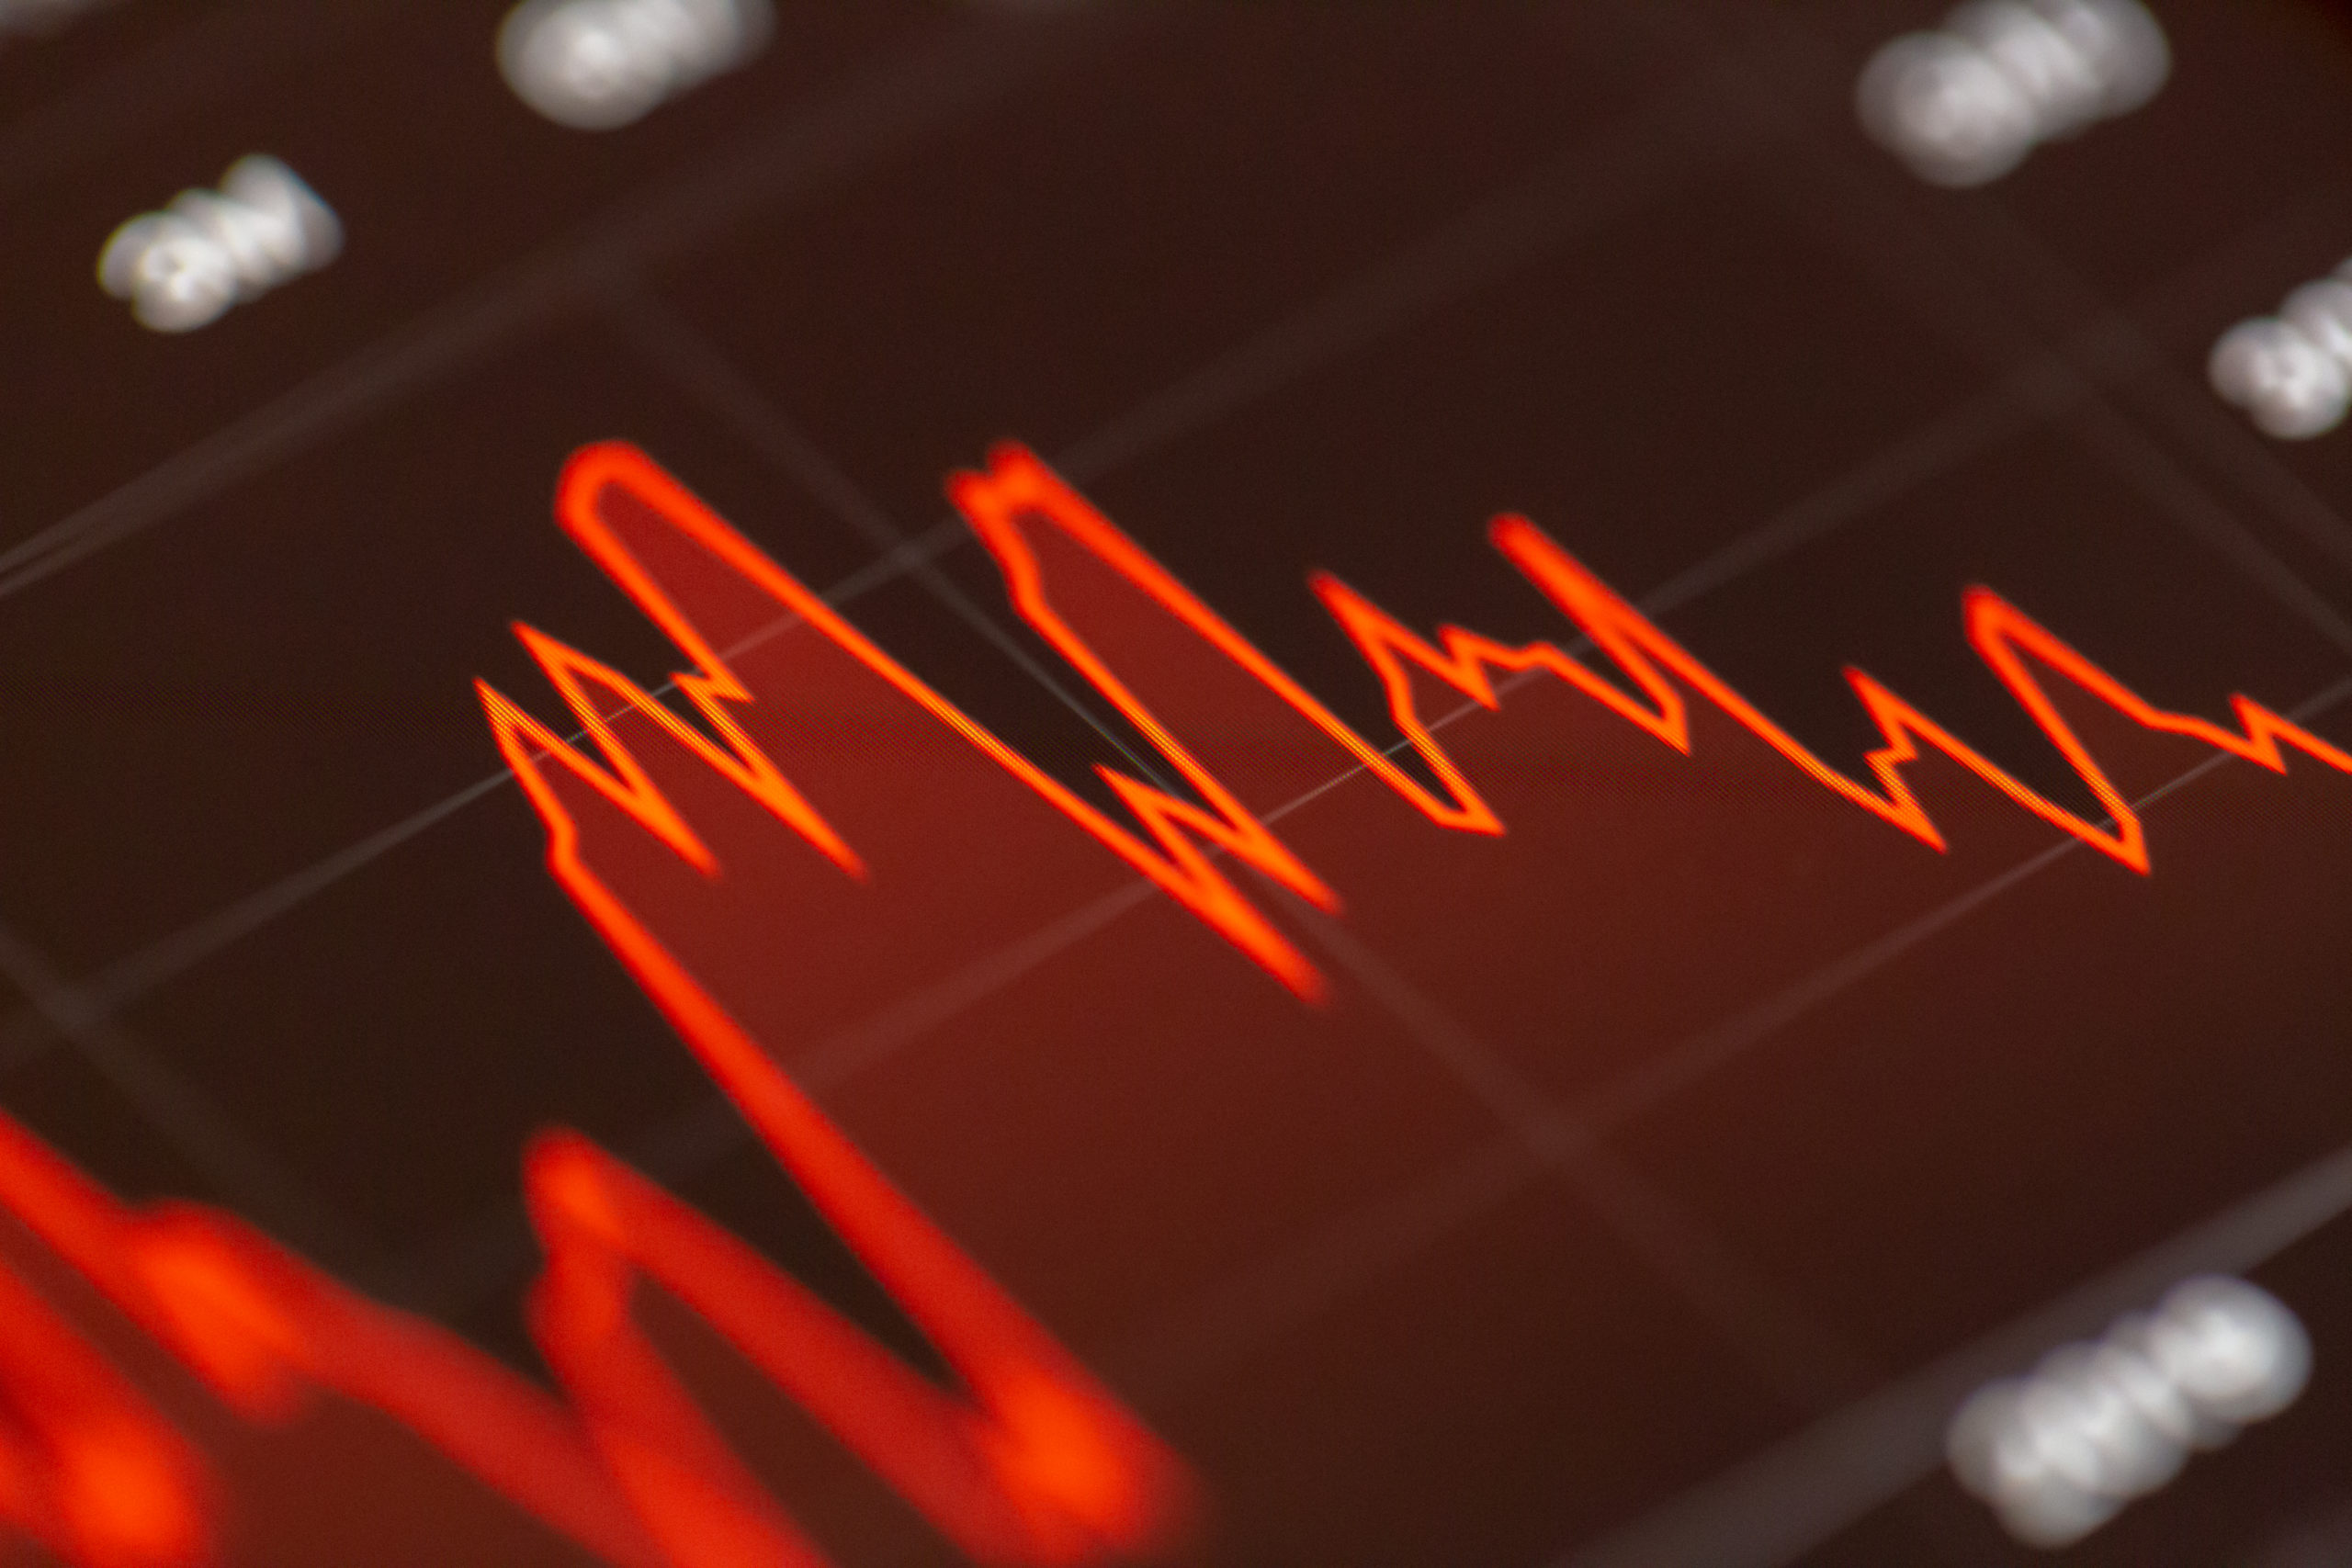 Bull Call strategy can help limit losses in volatile markets